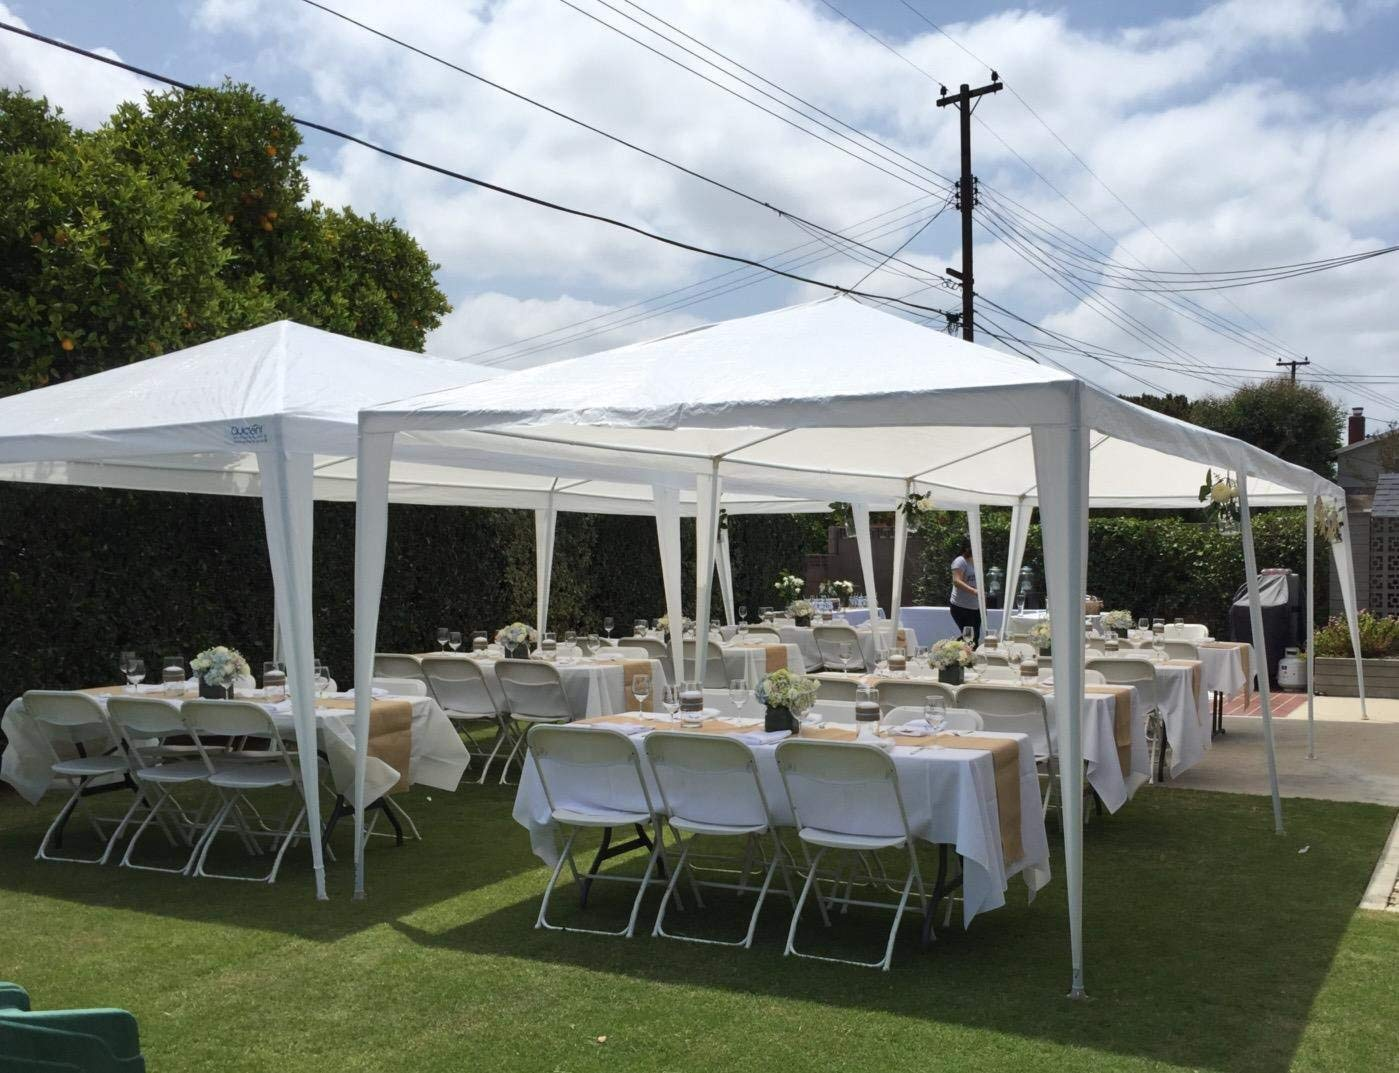 Peaktop 10 x 30 inches Heavy duty Outdoor Party Wedding Tent